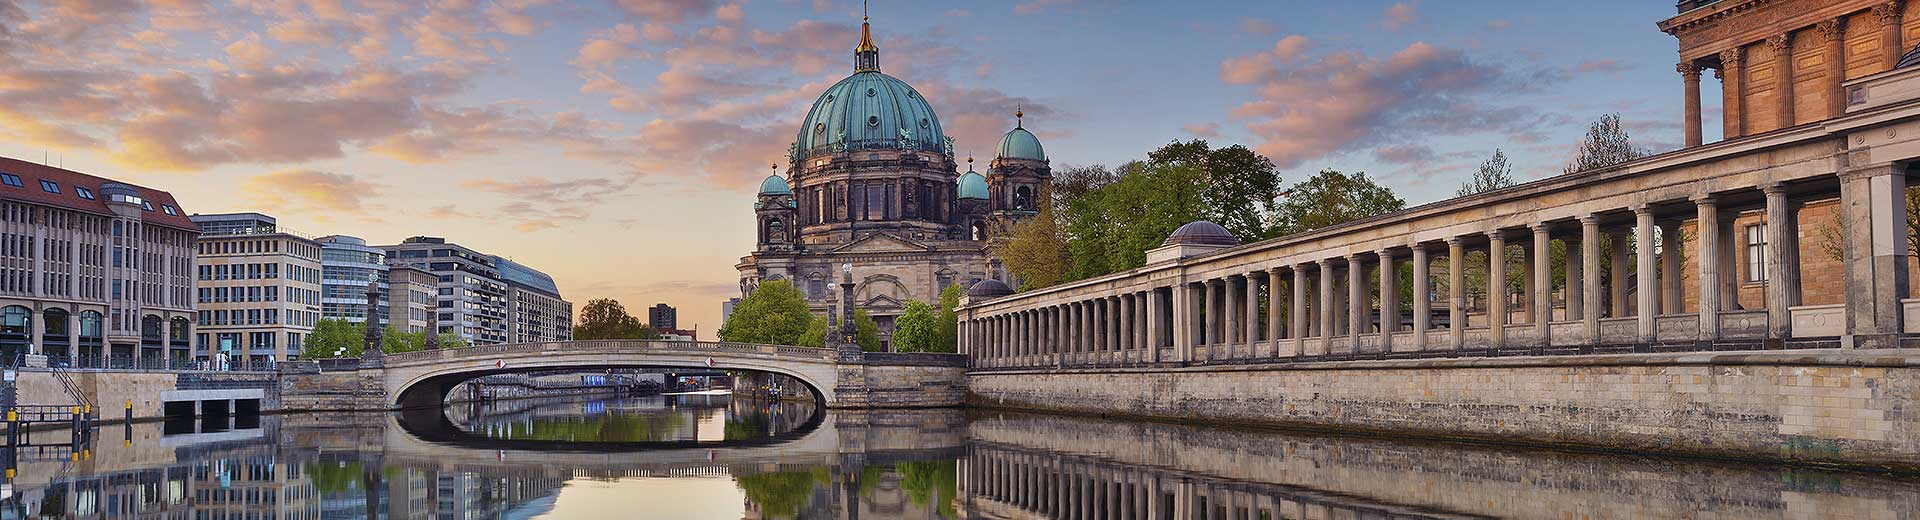 Gruppenreise Berlin - Package Gruppen Select Bahn